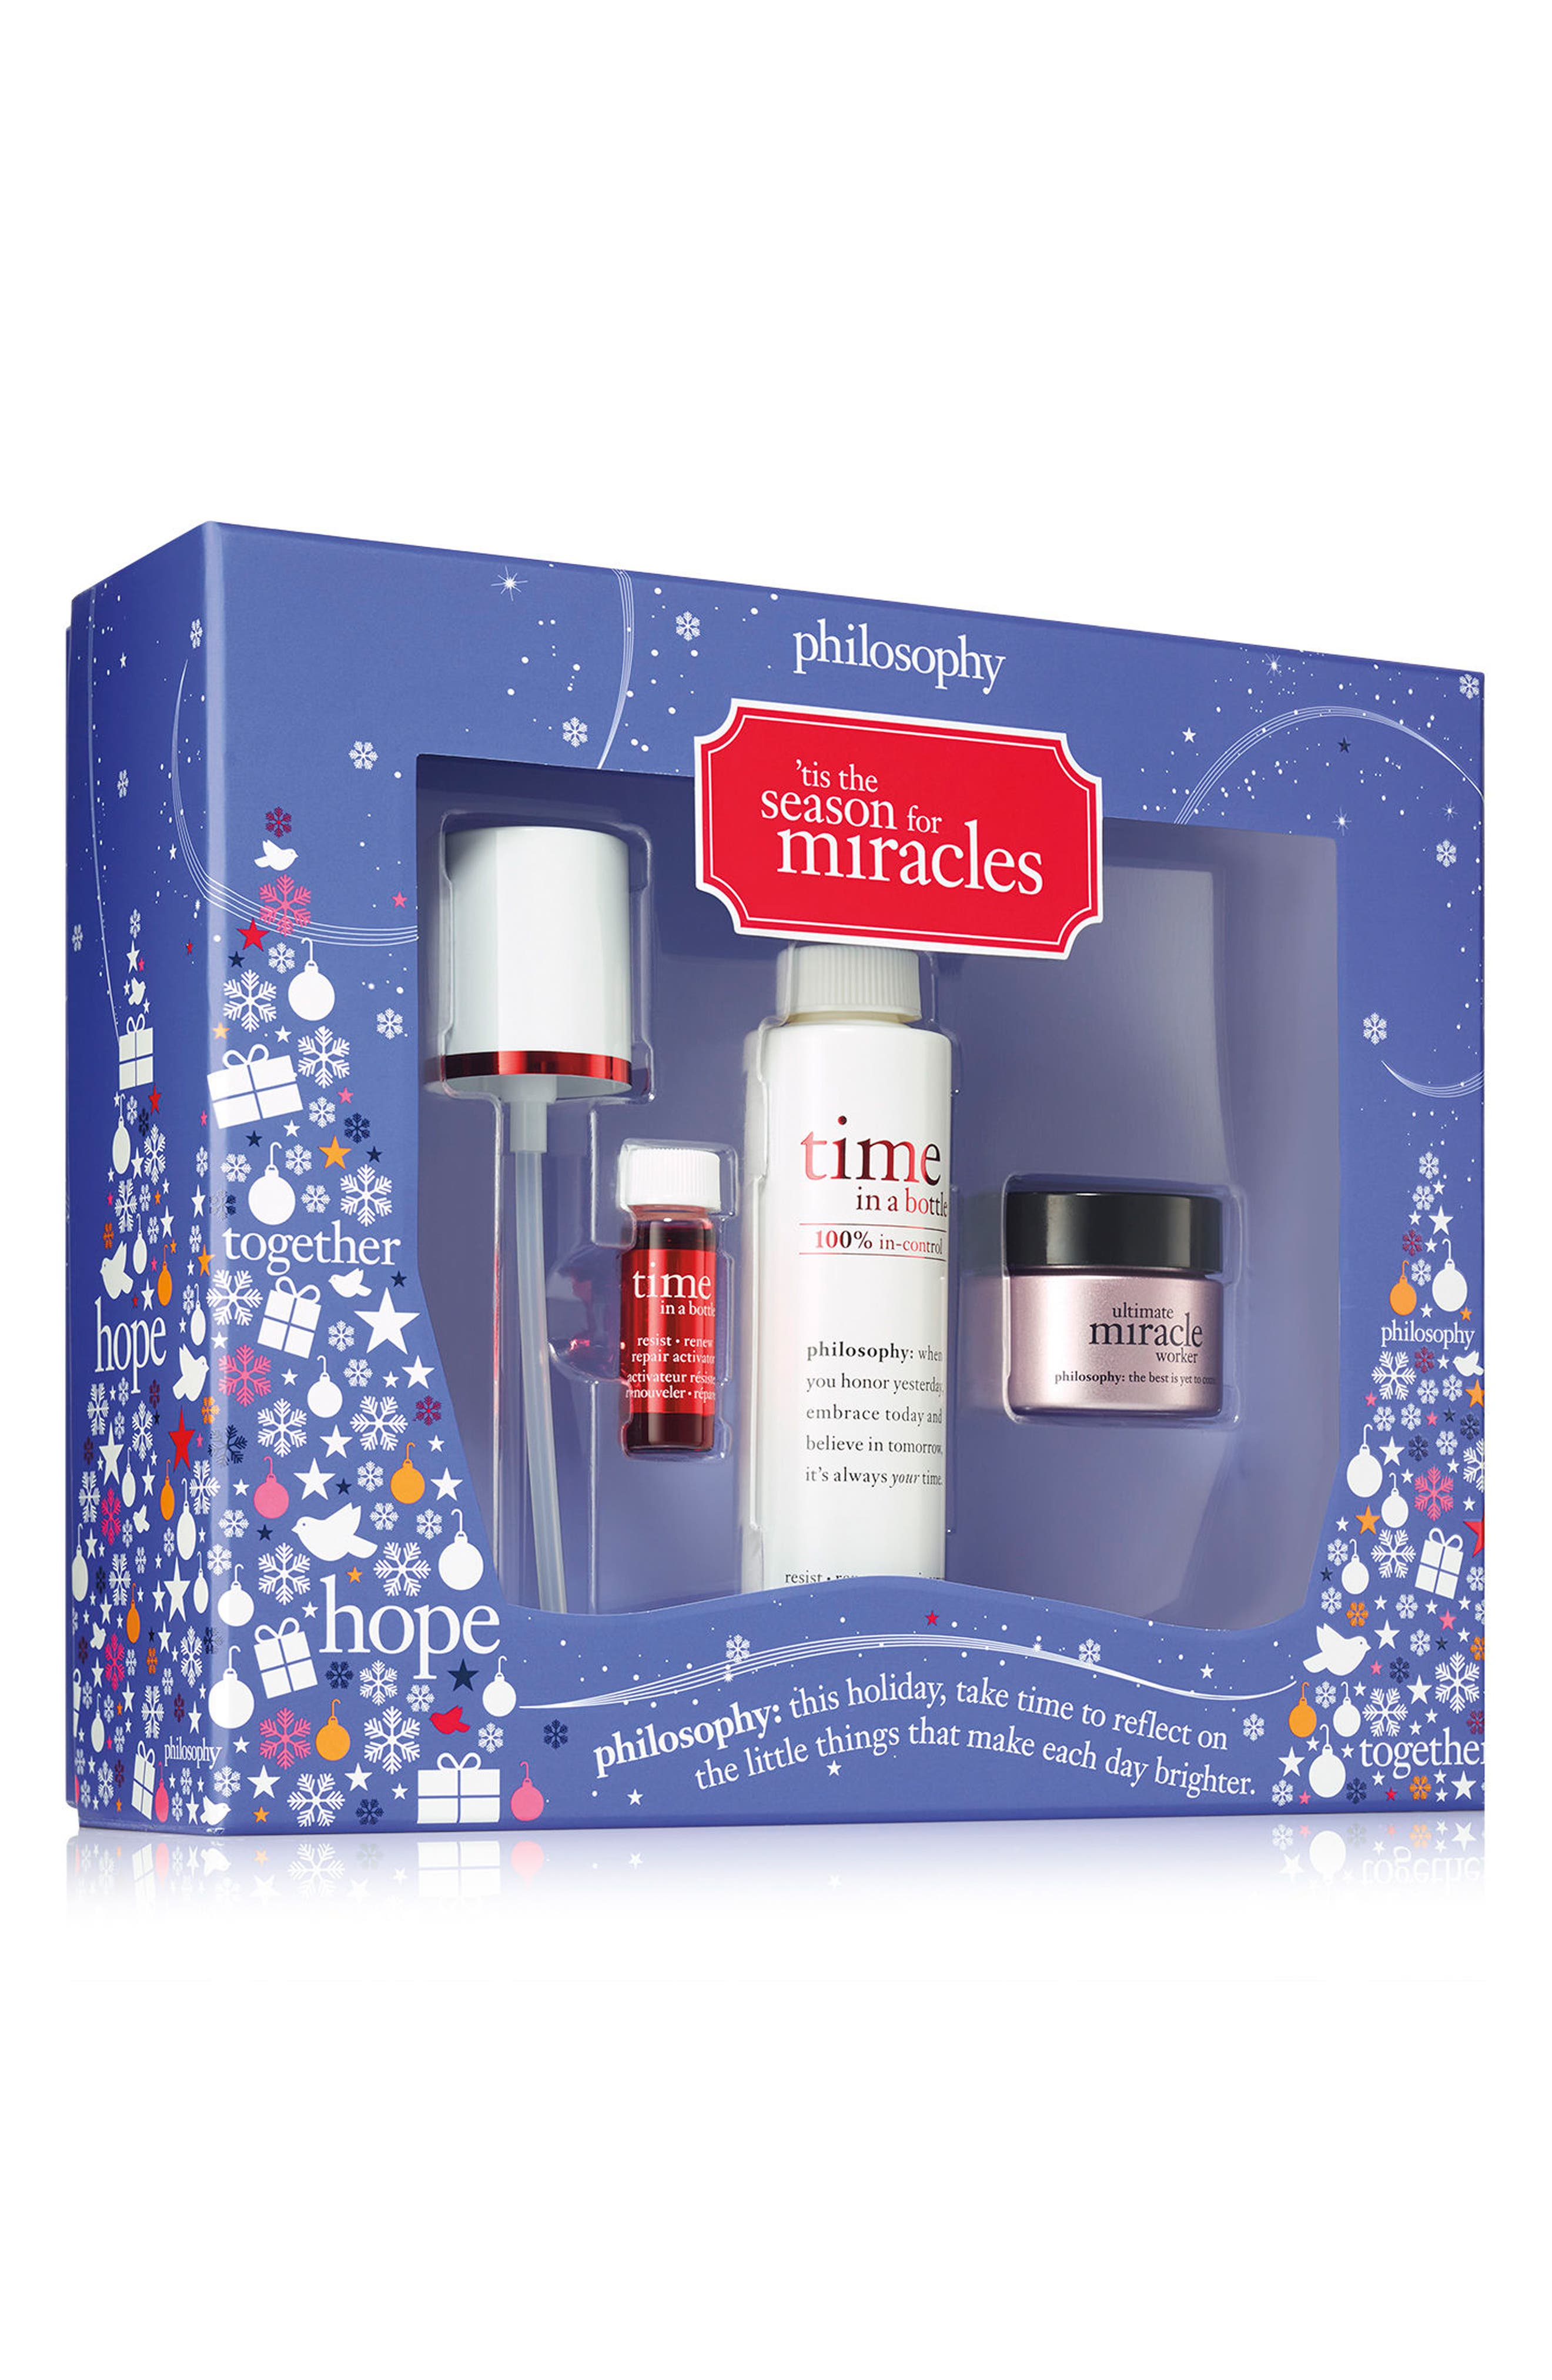 philosophy transformation express set (Limited Edition) ($104 Value)